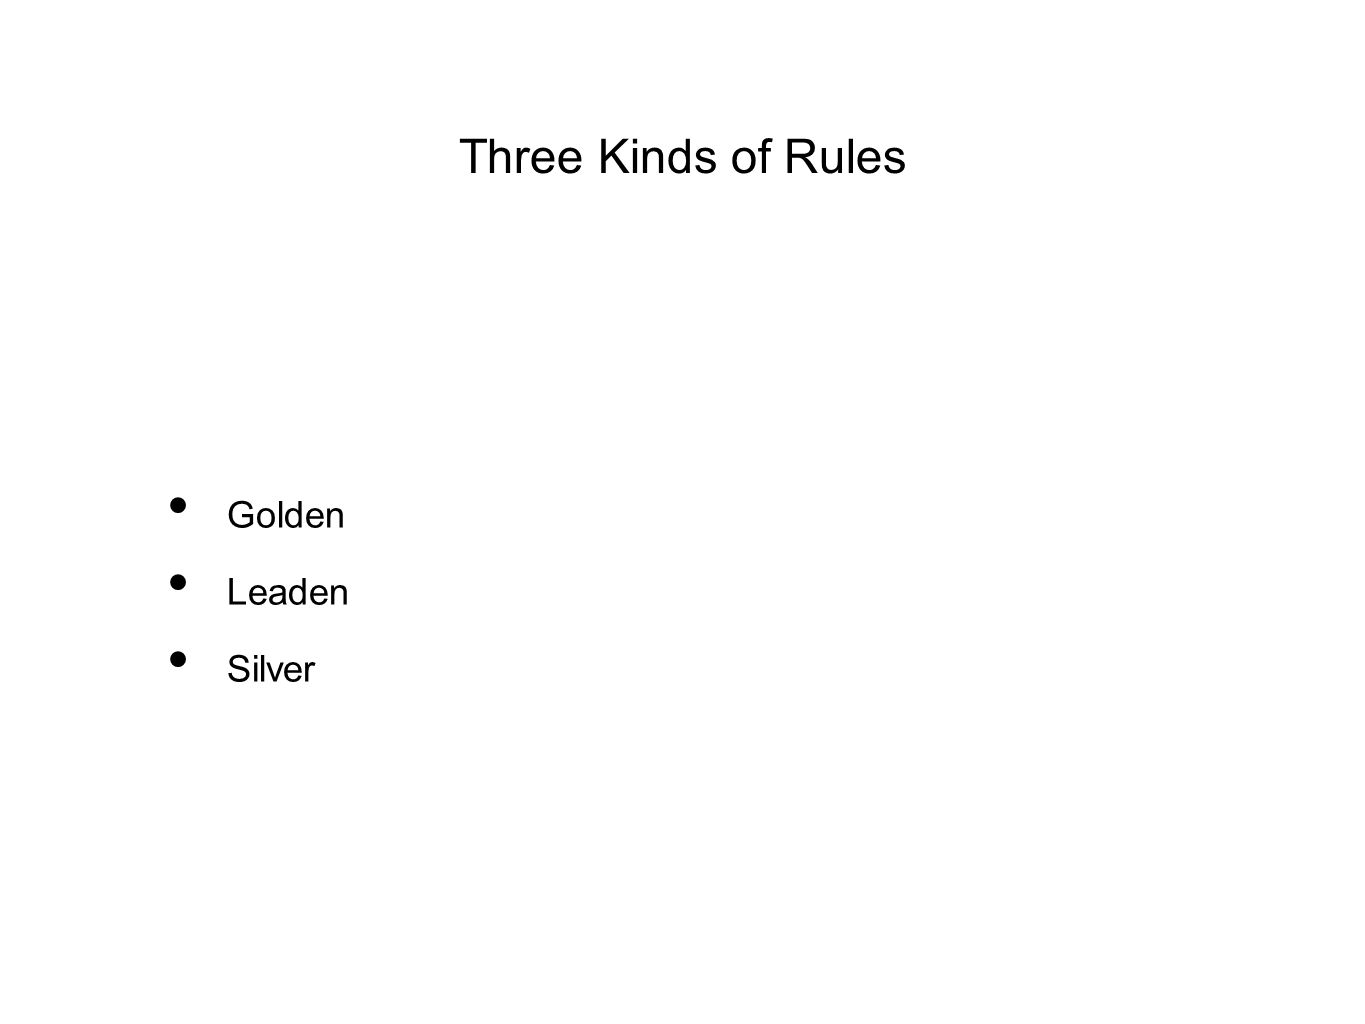 The Golden Rule Do unto others as you would have them do unto you.